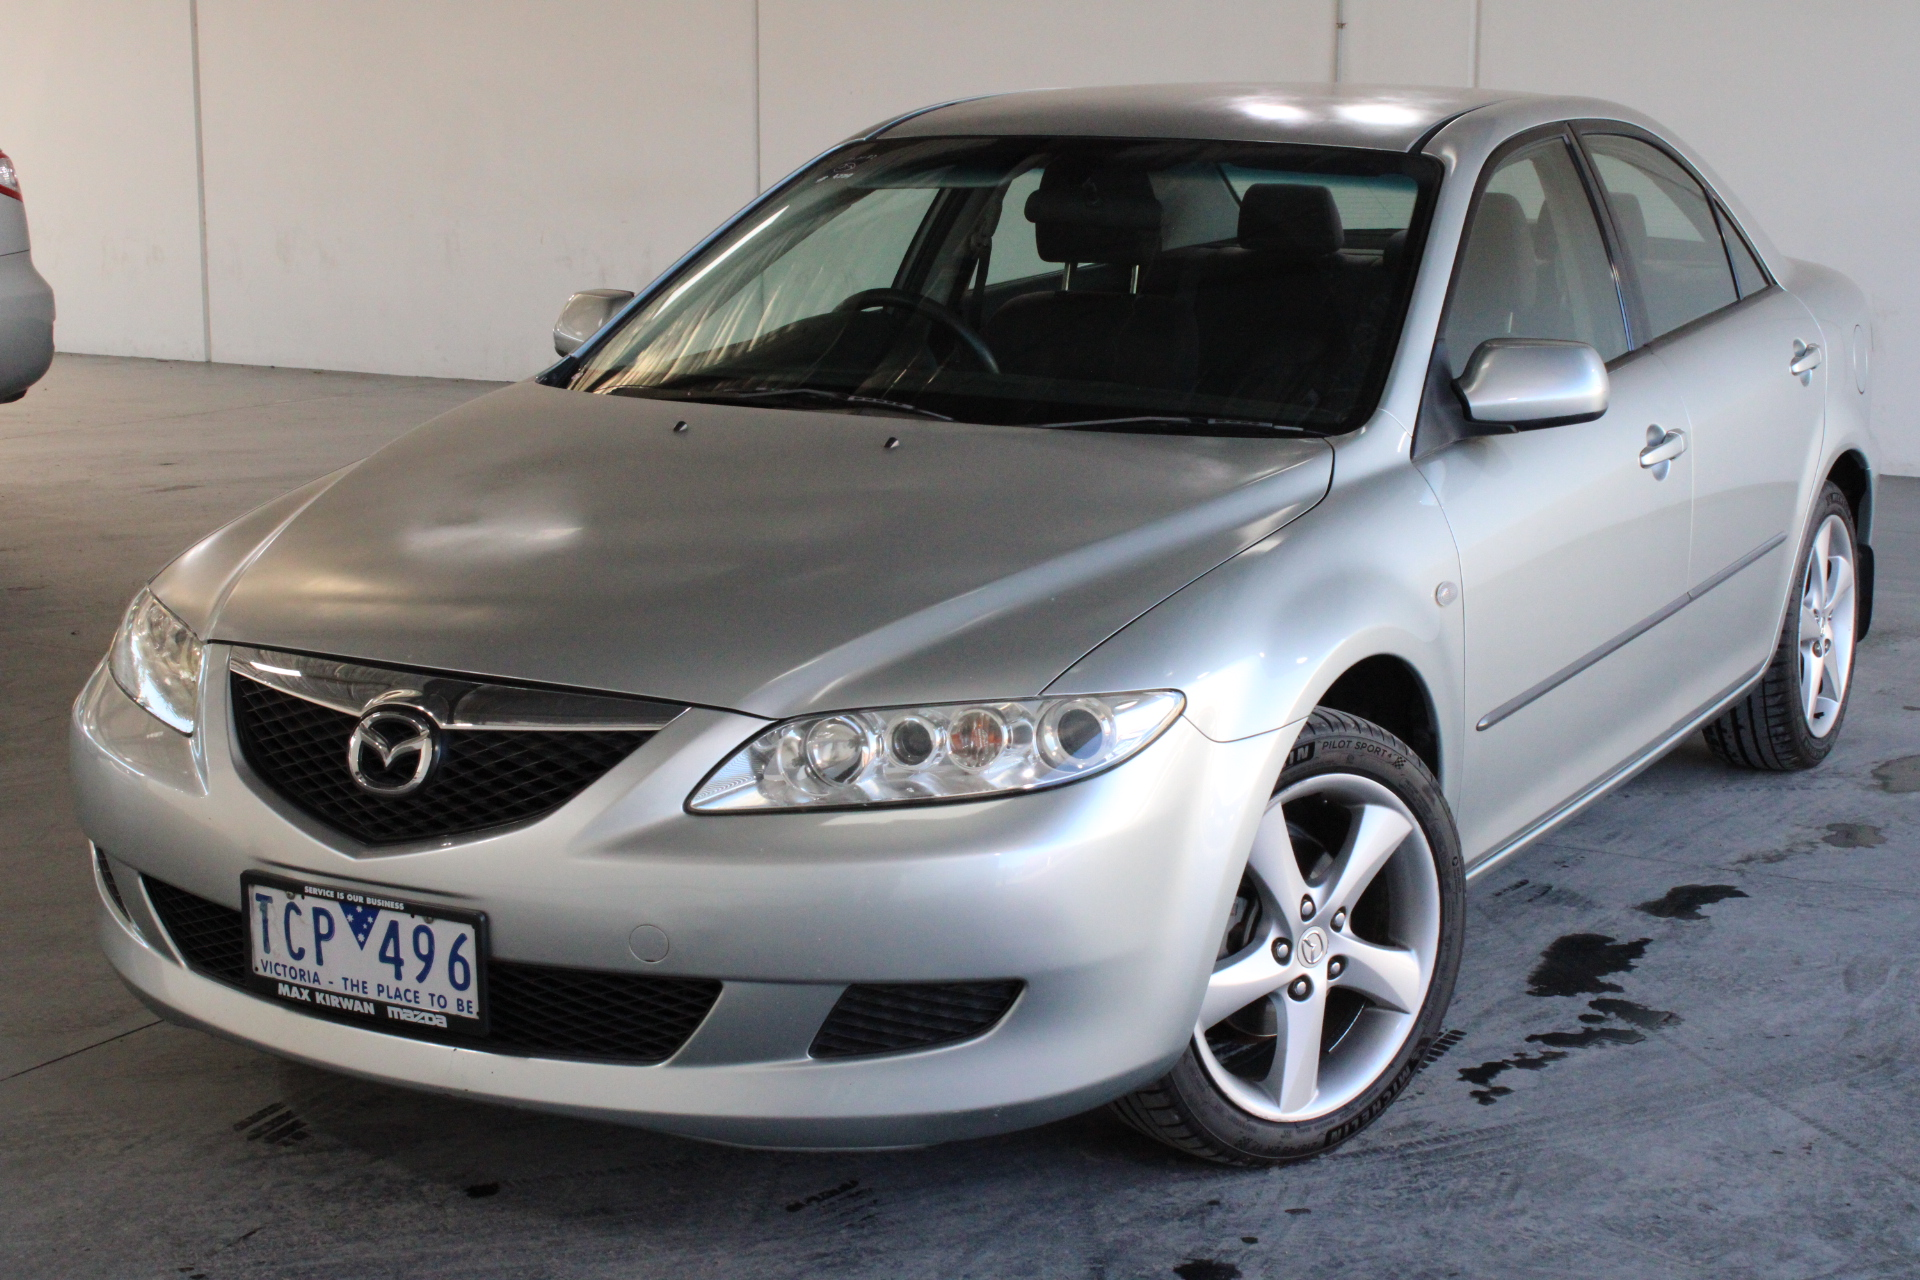 2004 Mazda 6 Limited GG Manual Sedan